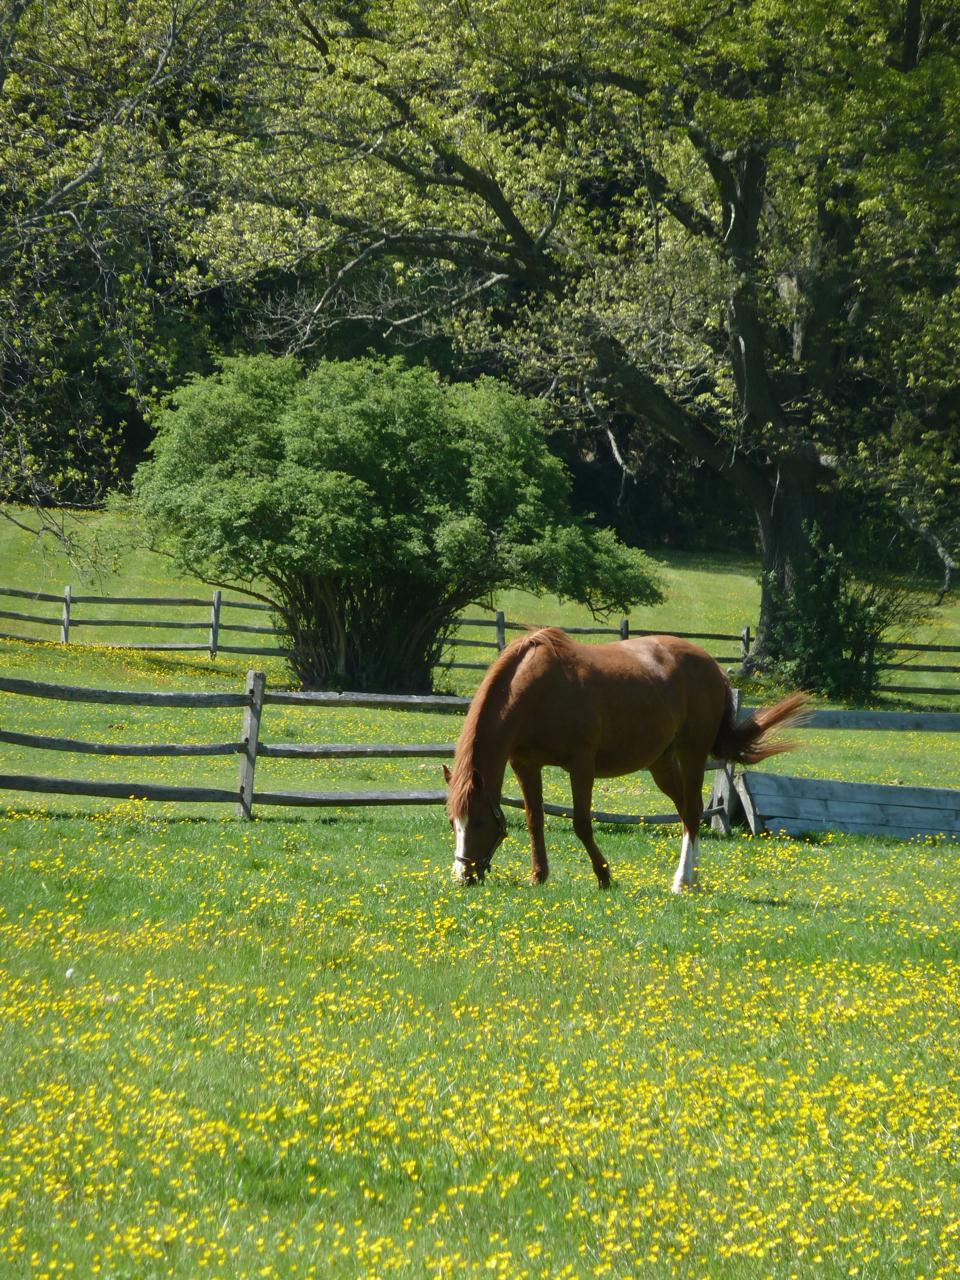 Horses in New England